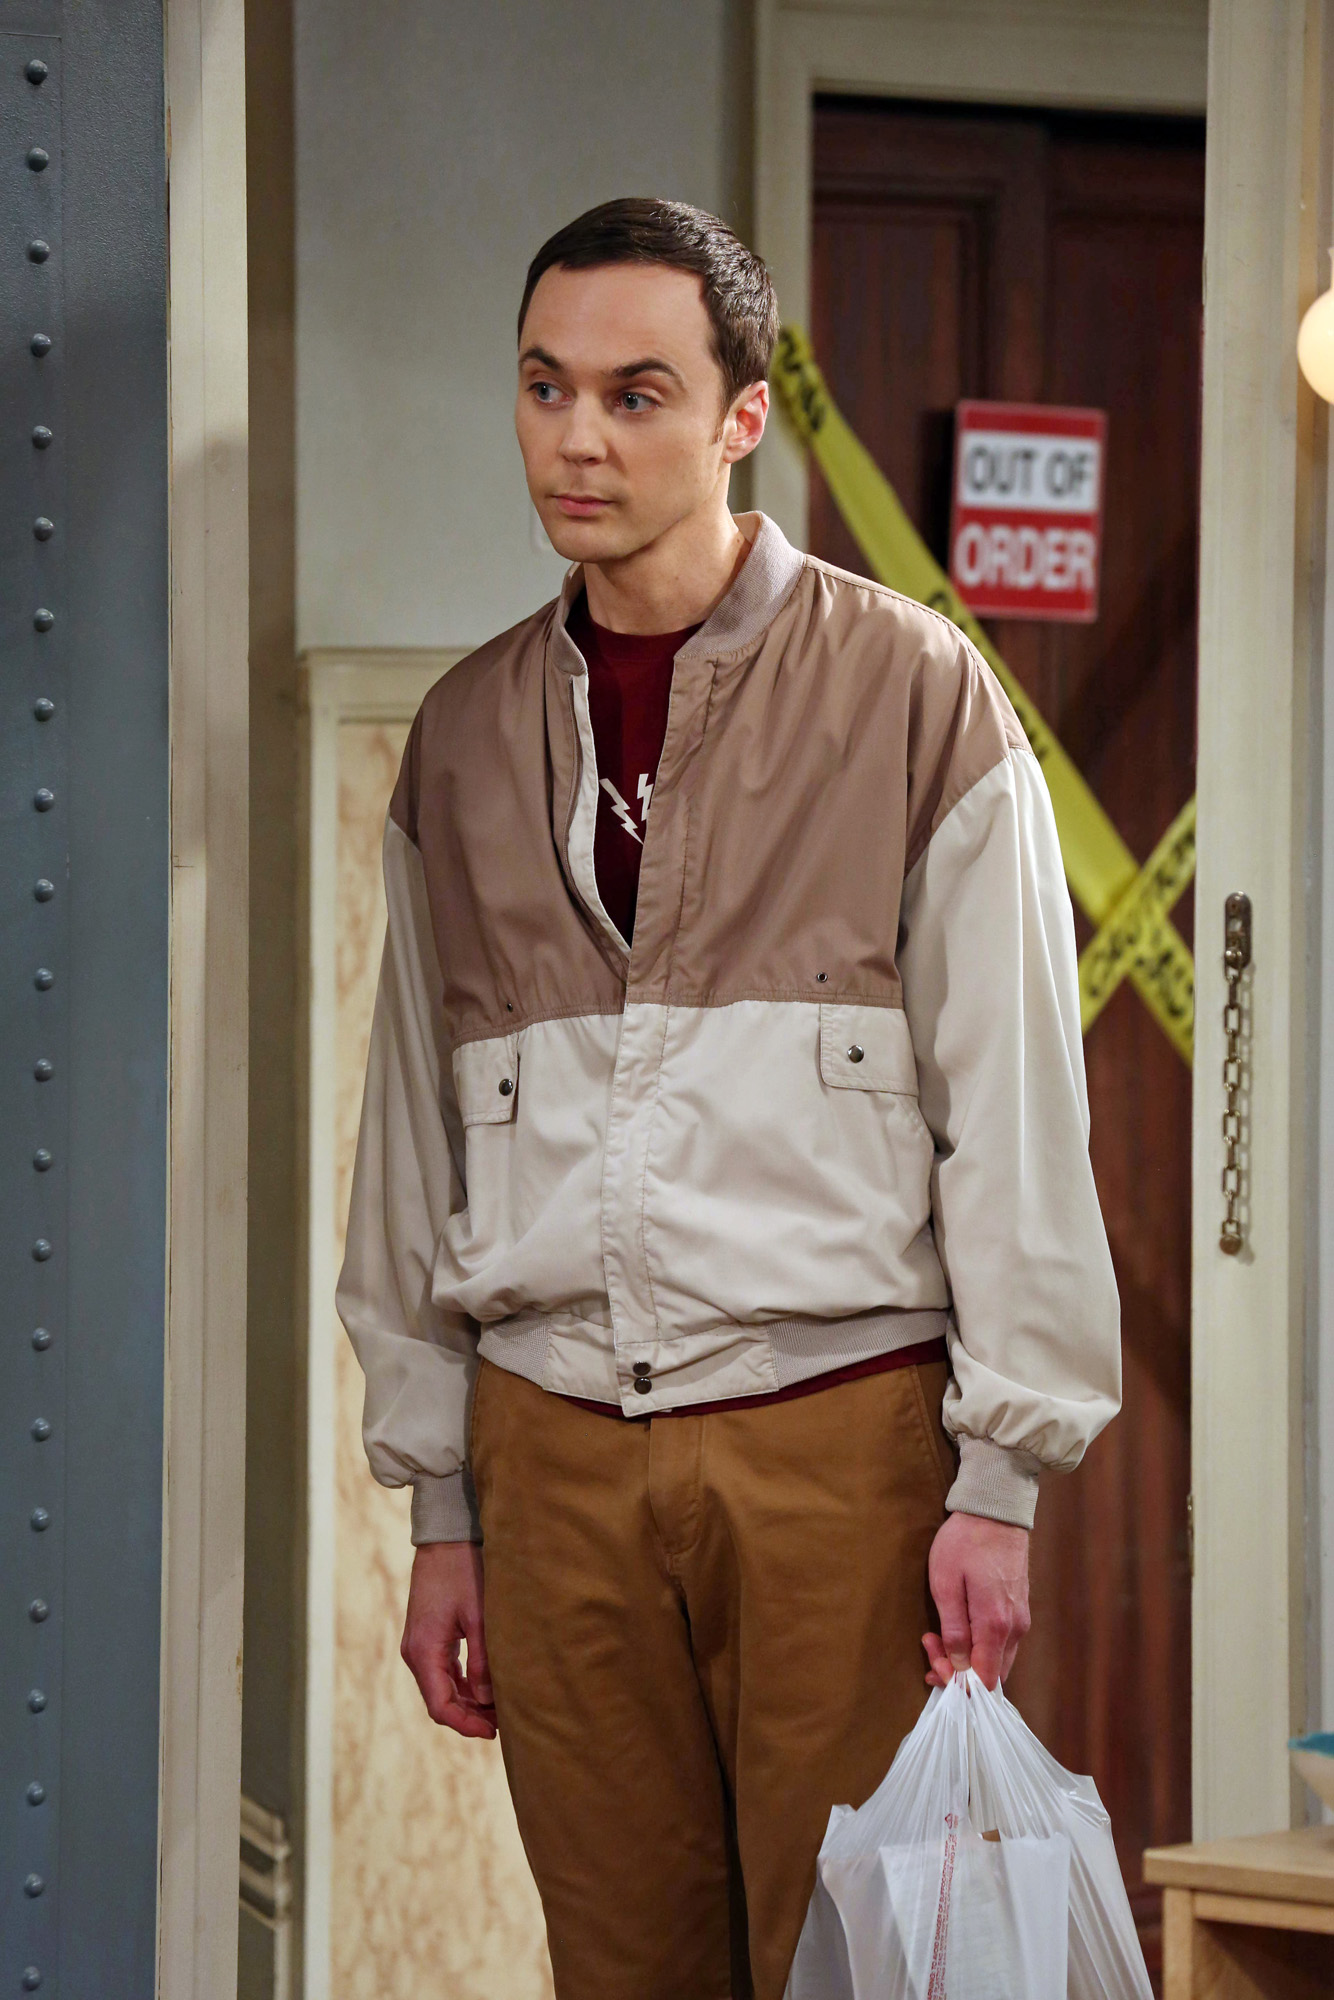 Sheldon in